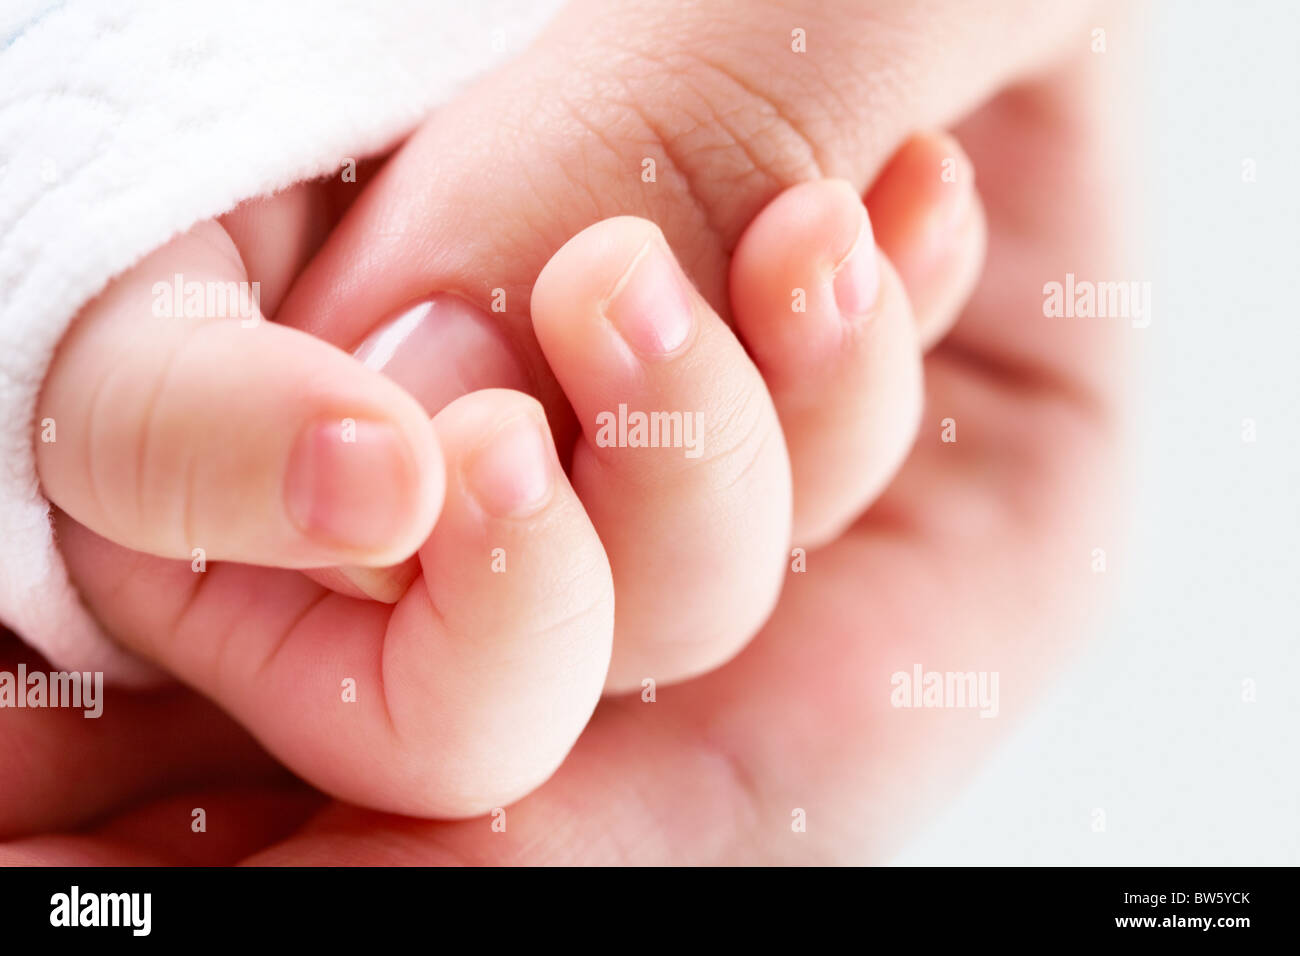 Close-up of female thumb in small hand - Stock Image